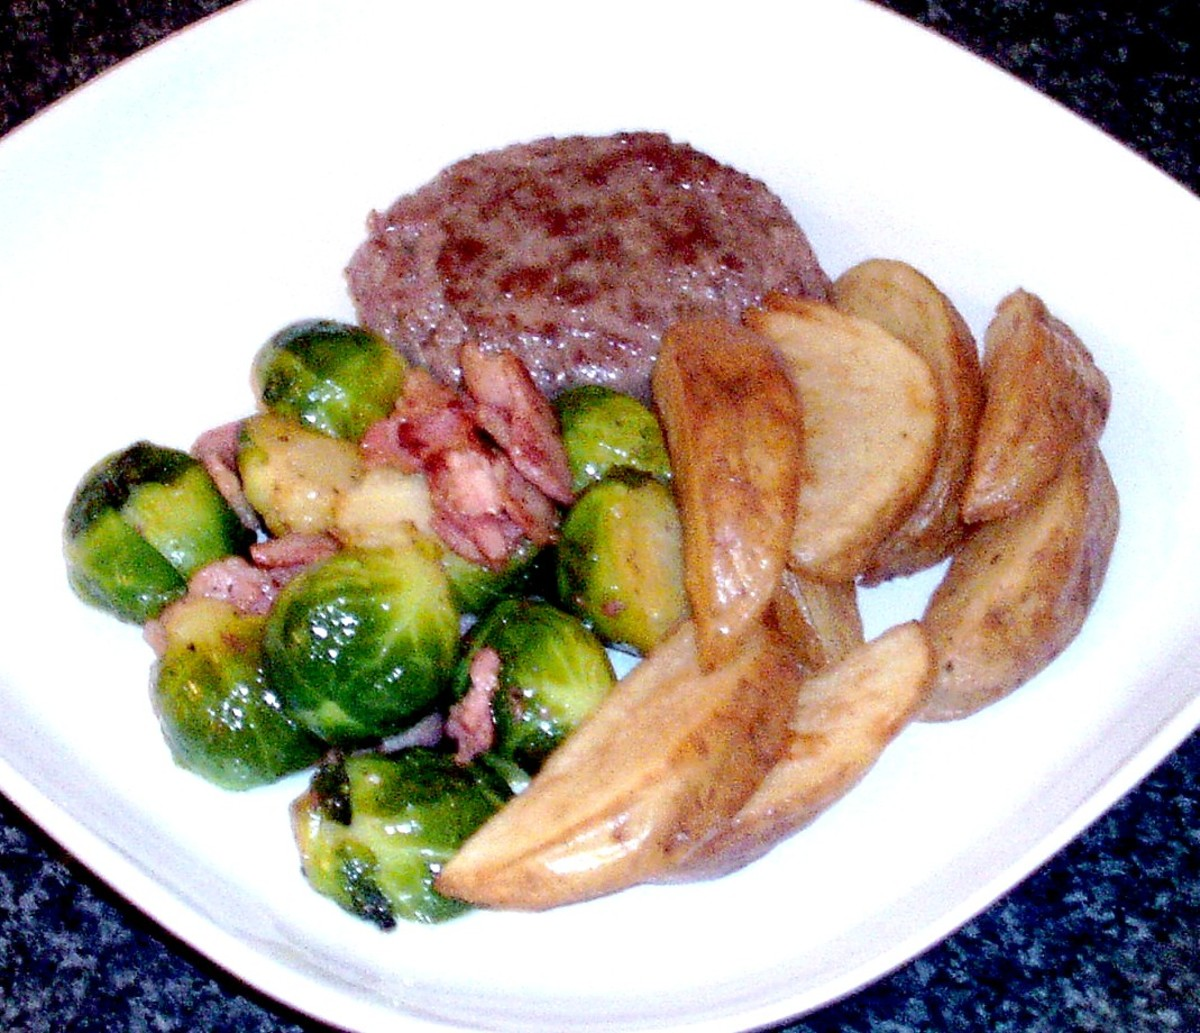 Plated burger, sprouts, bacon and wedges